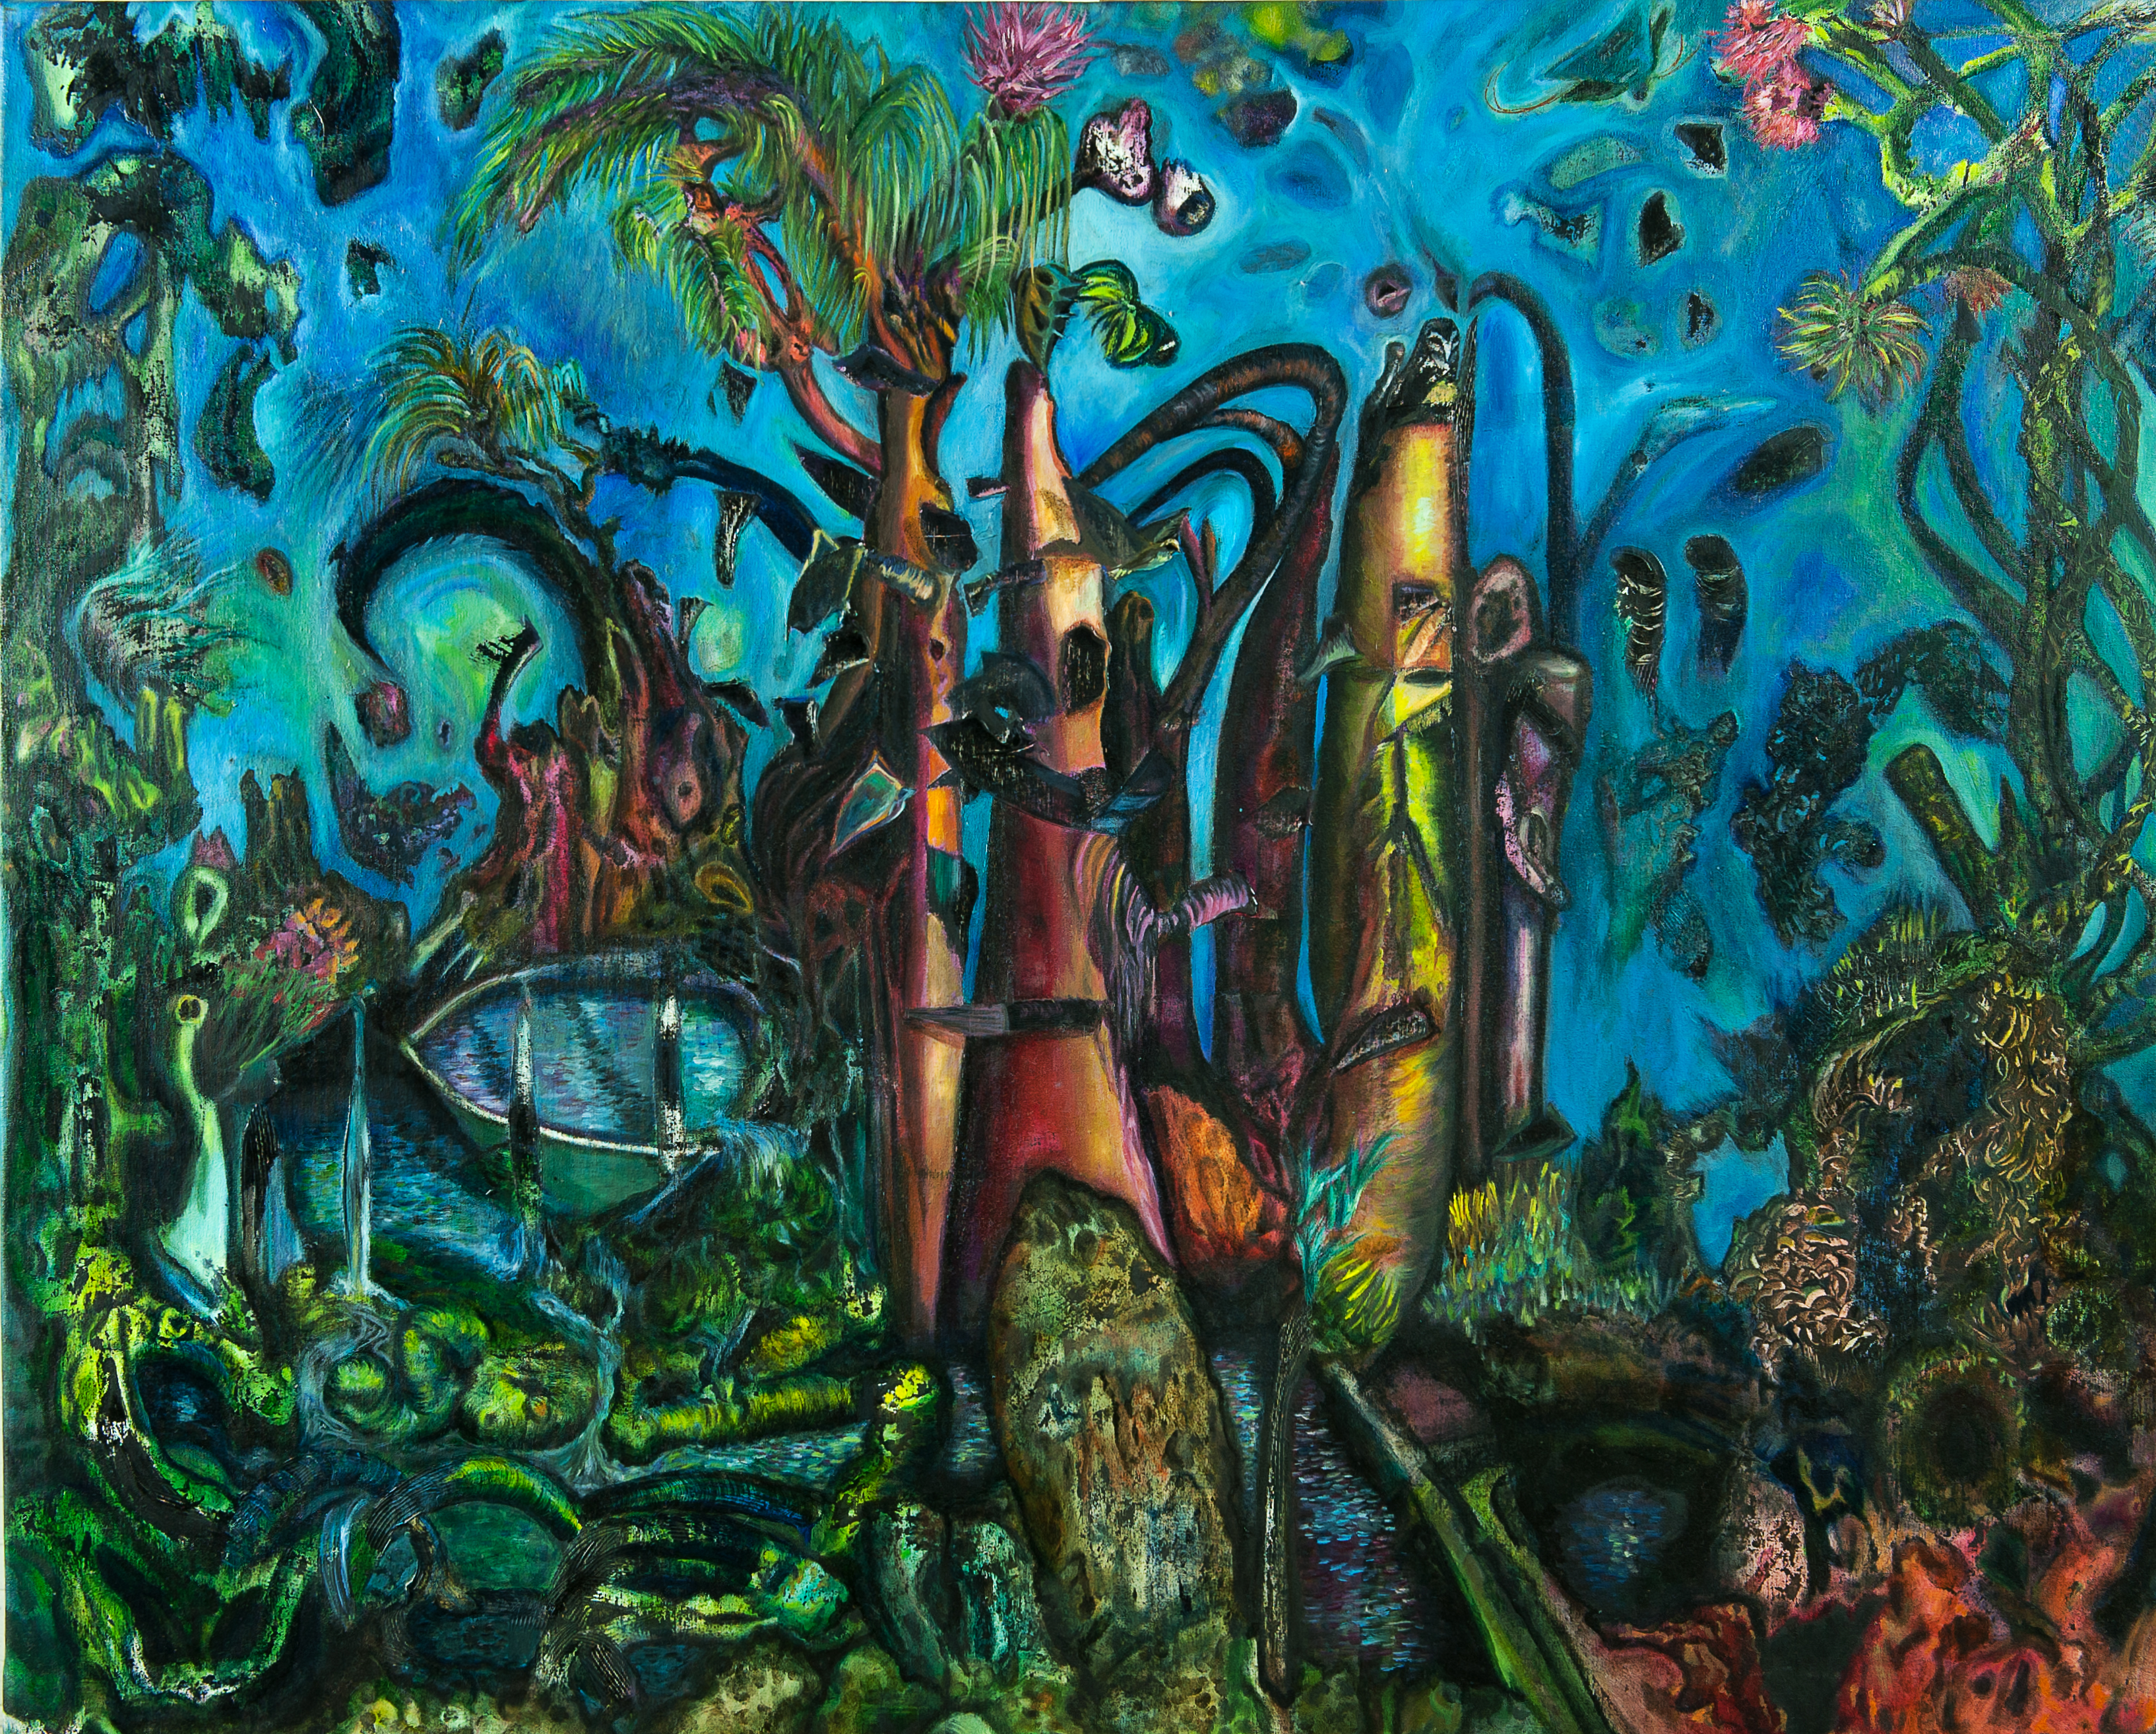 Jungle from Subconsciousness